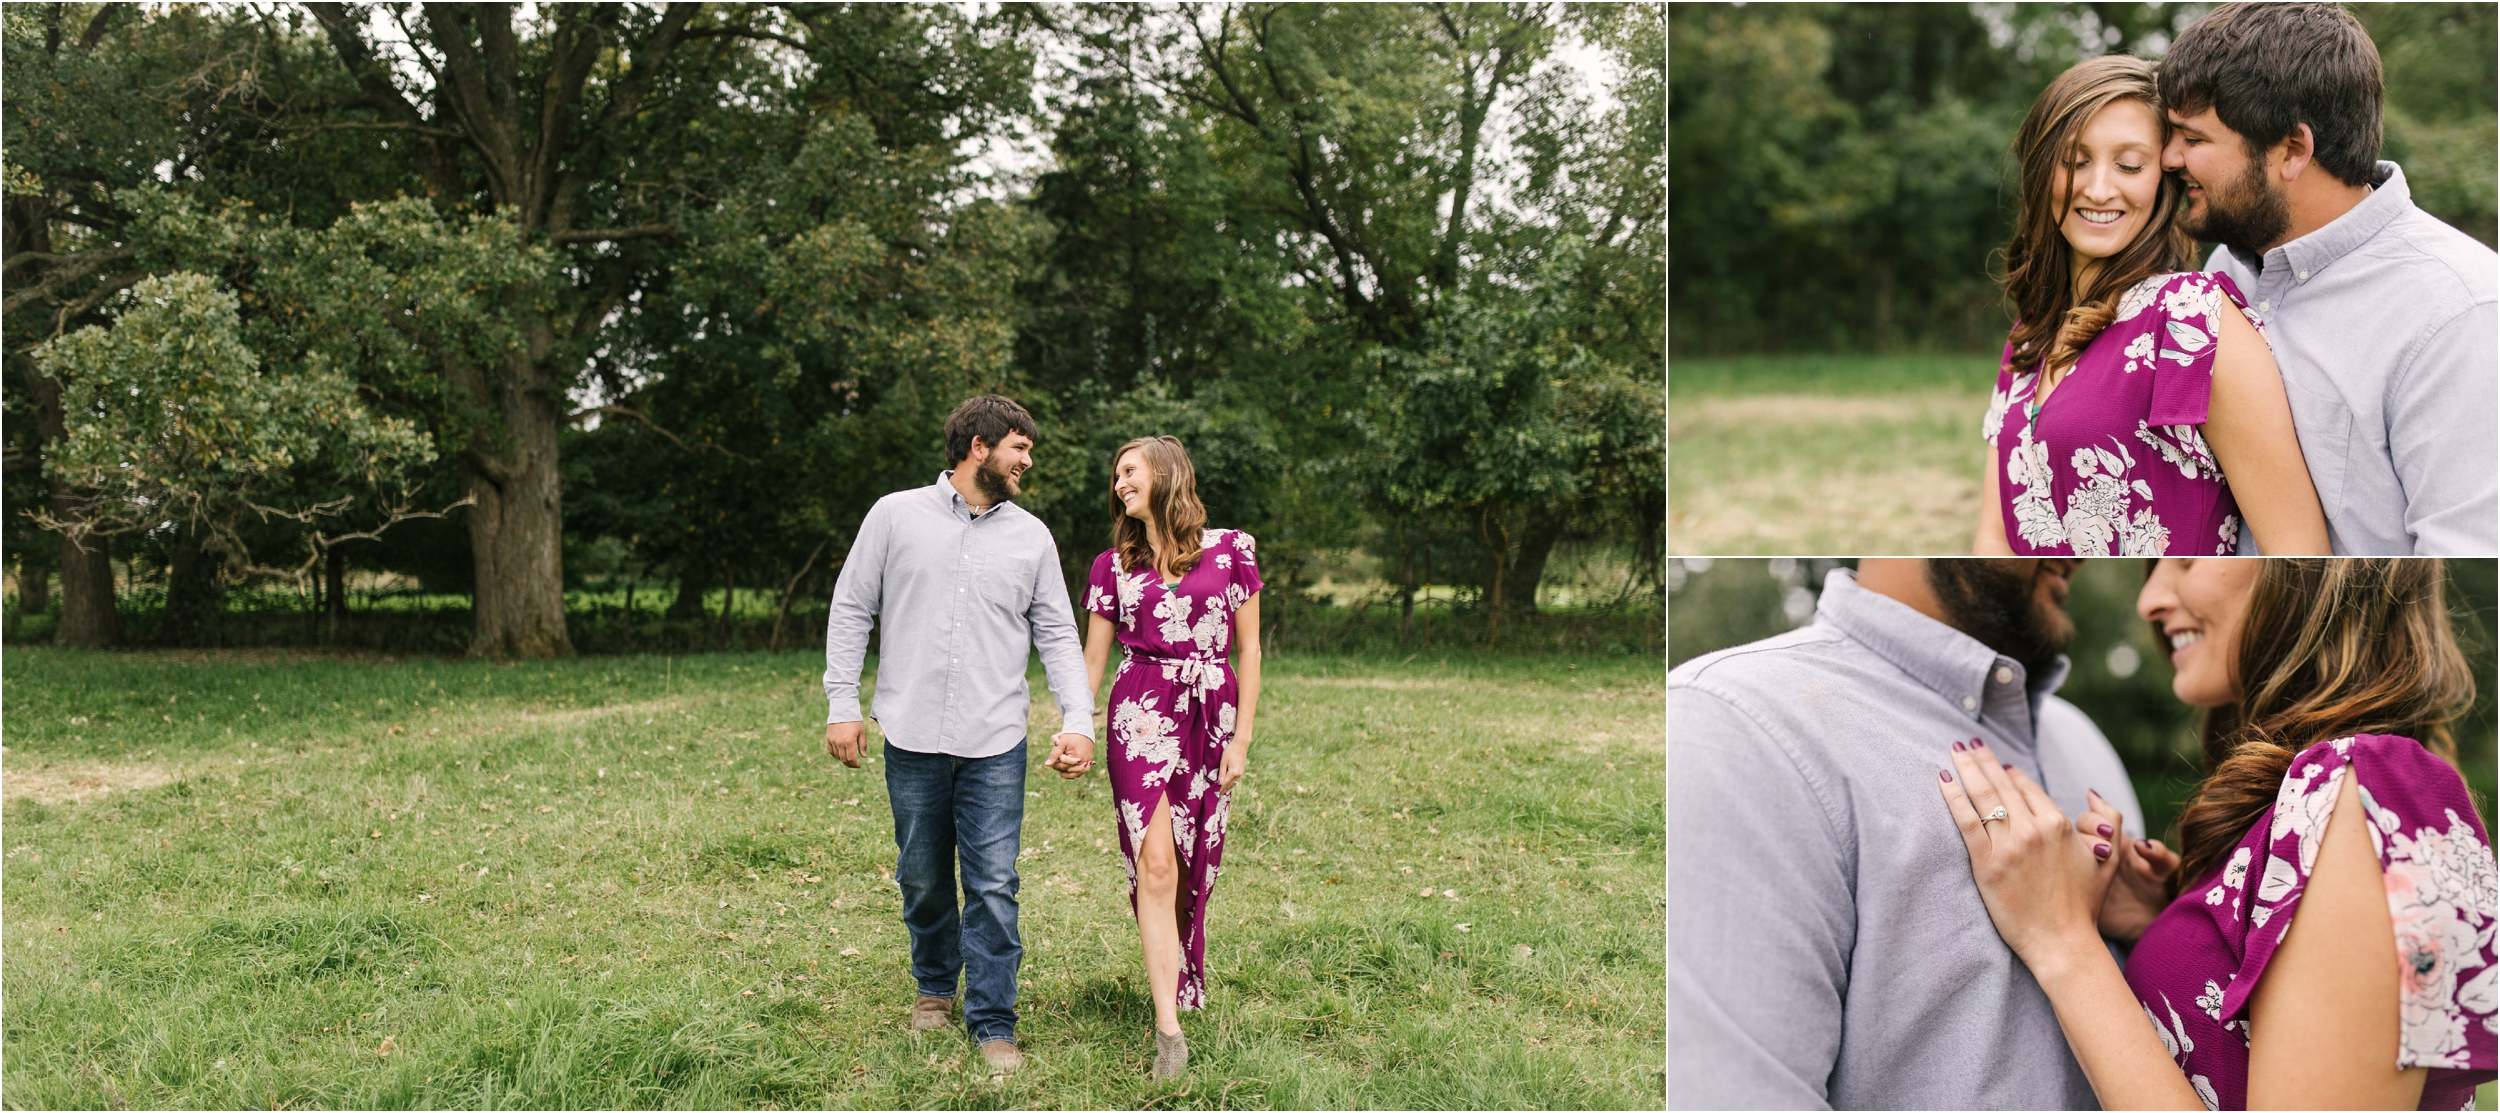 Countryside Engagement Photos_ Minnesota Wedding Photographer_Stephanie Lynn Photography_0054.jpg